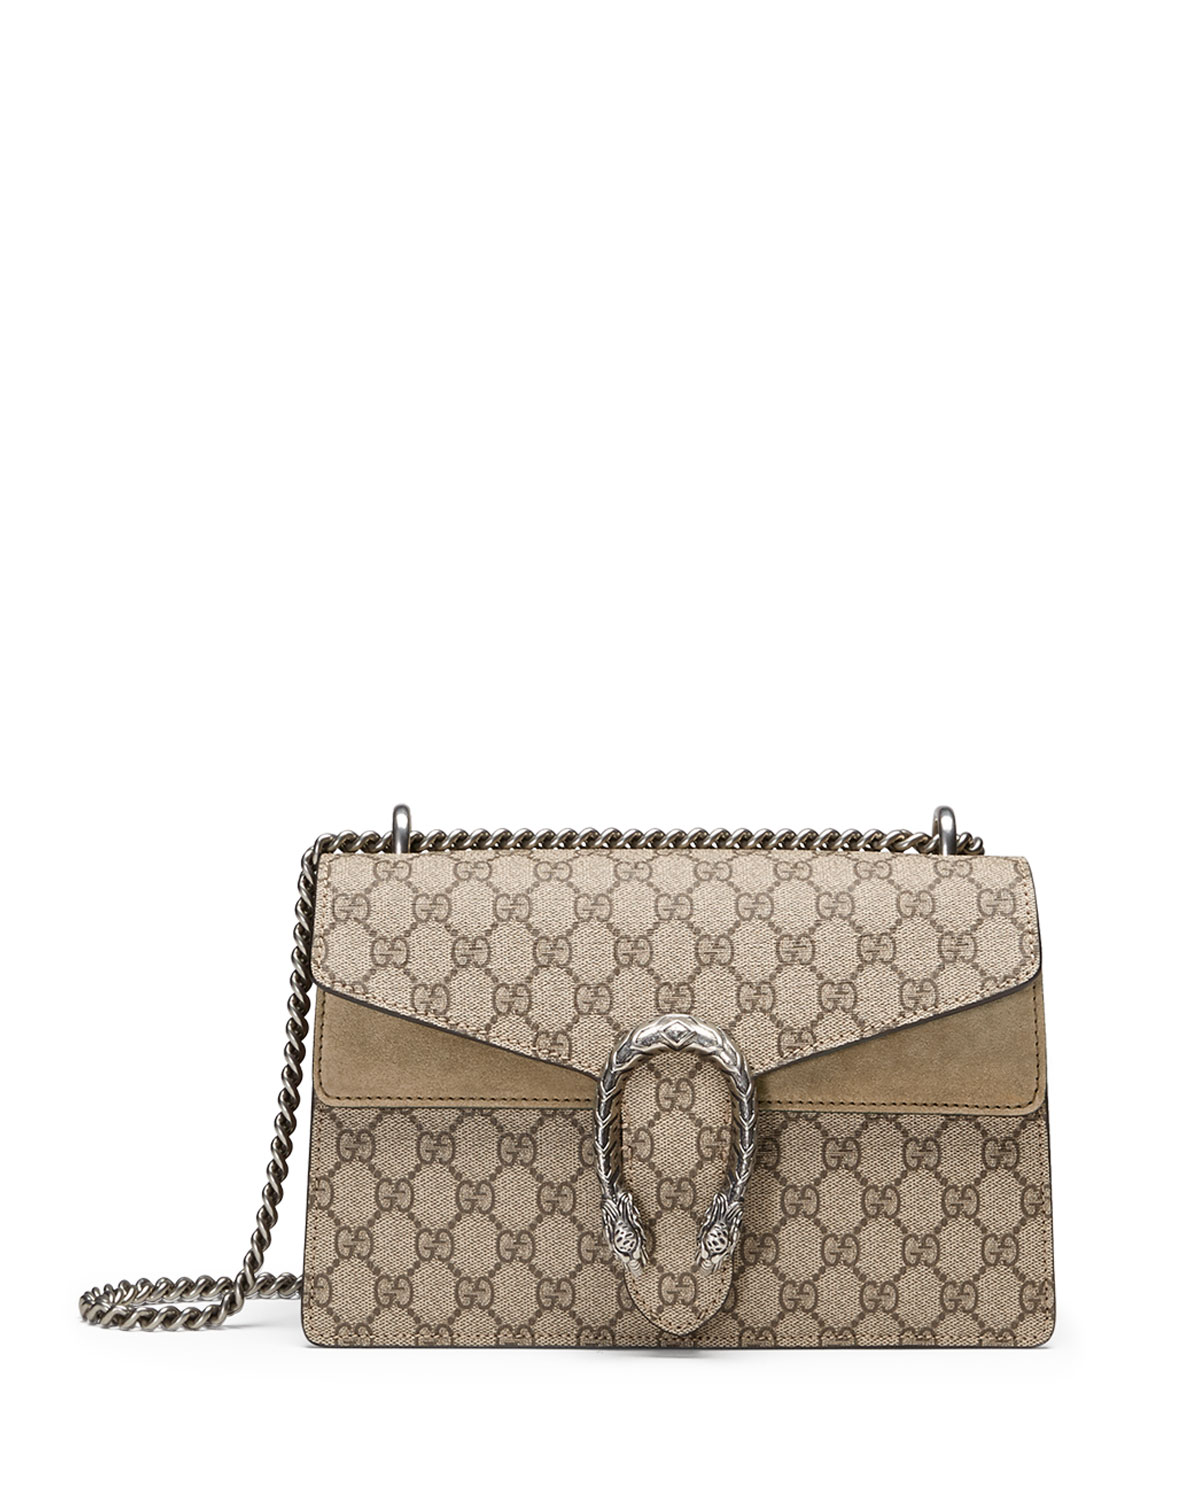 d7923ff6080c Quick Look. Gucci · Dionysus GG Supreme Small Shoulder Bag